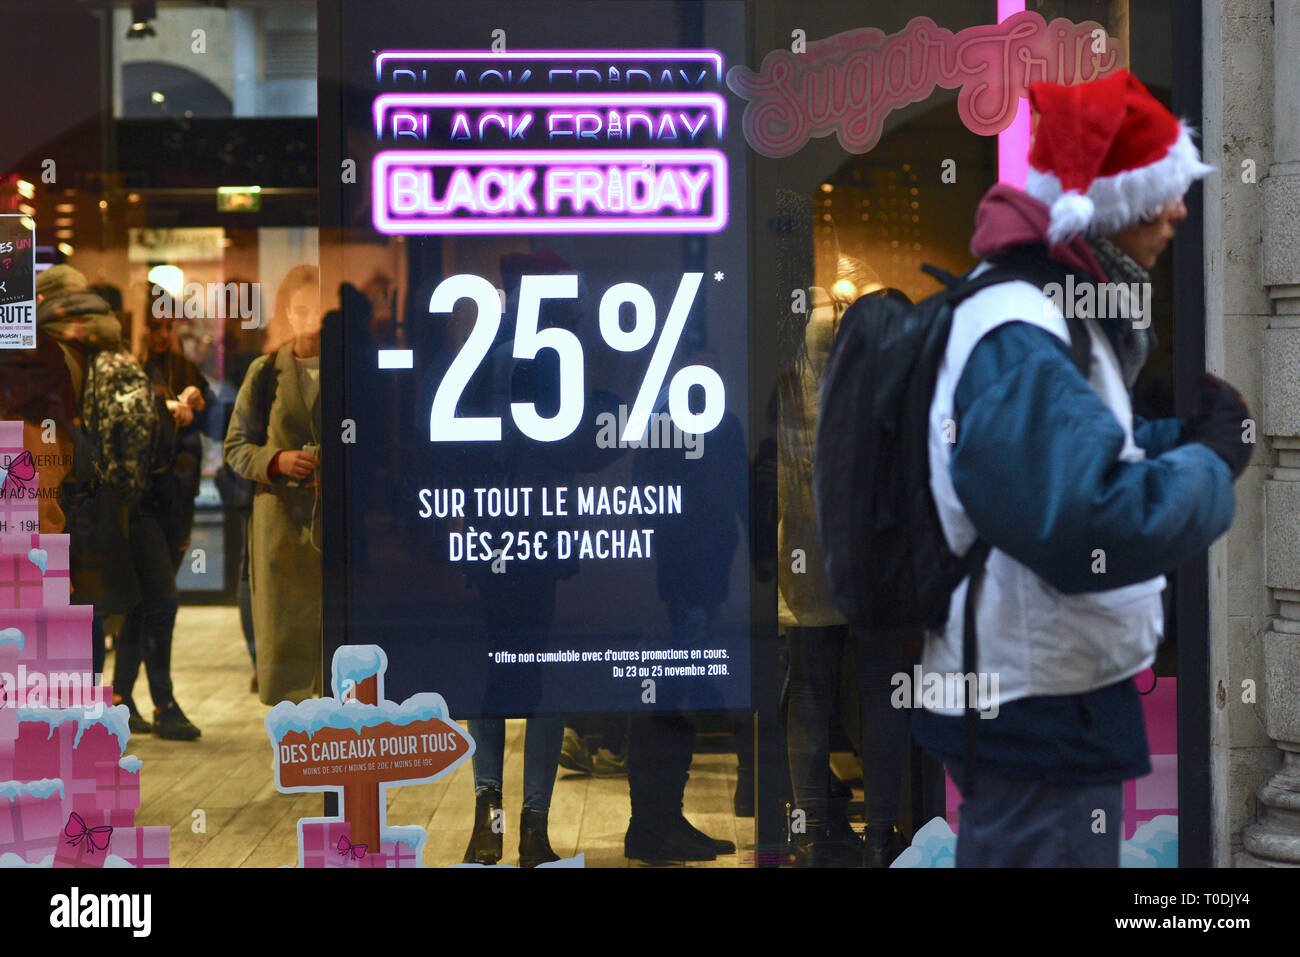 Poster 'Black Friday, spend 25€ and get 25% off your entire purchase' on a shop window on November 23, 2018 - Stock Image